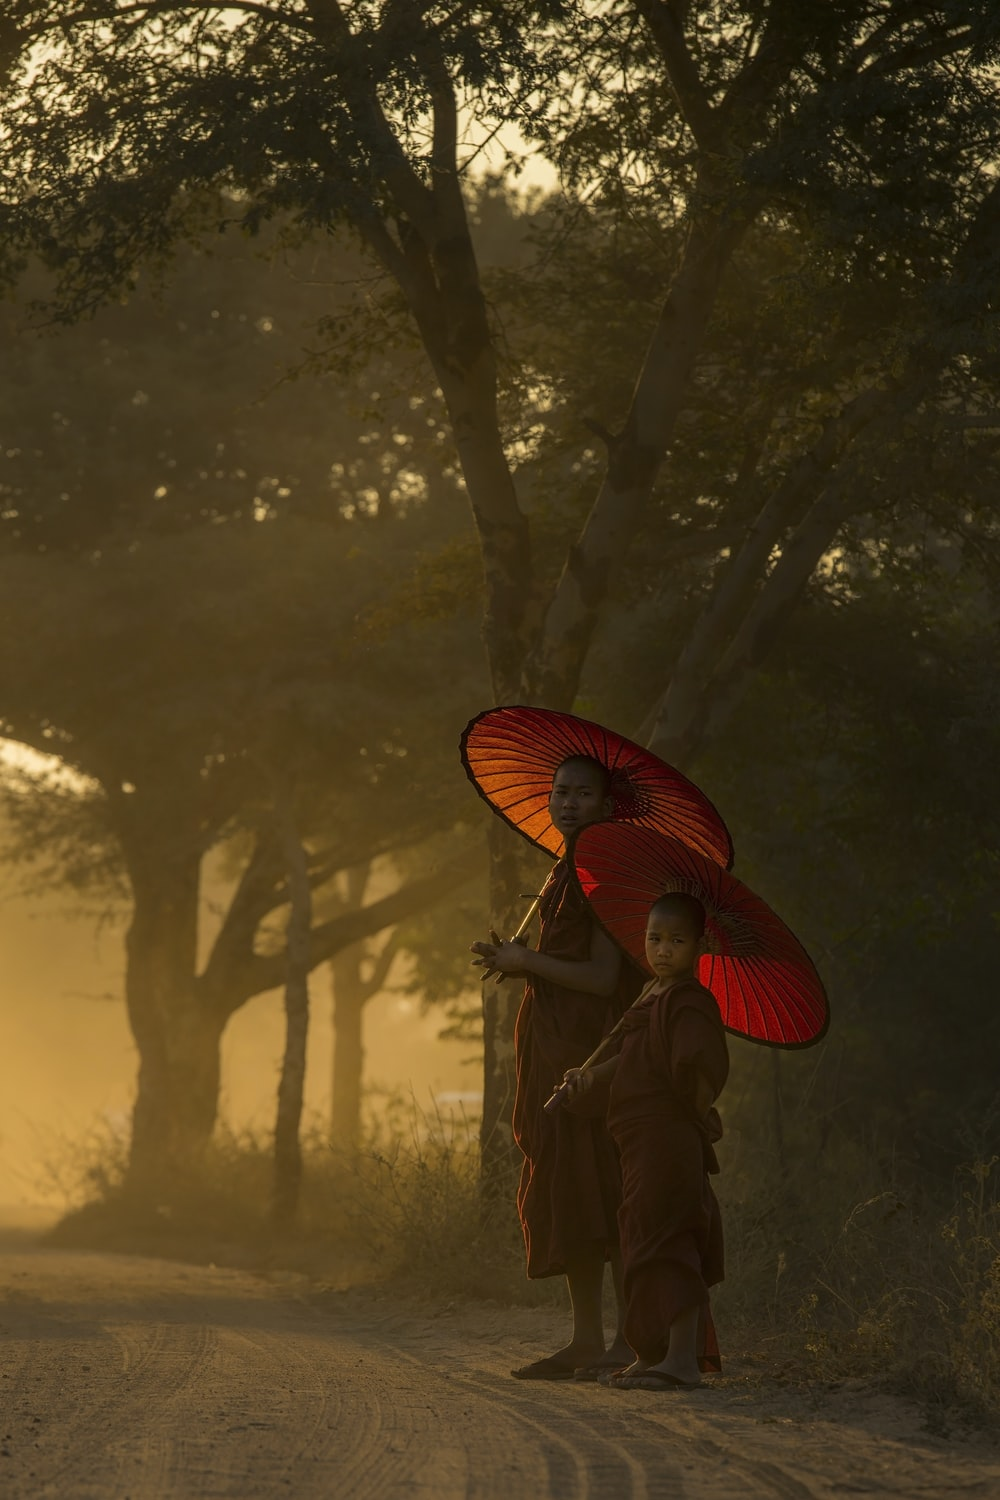 two monks under red wax umbrella surround by green leafed trees